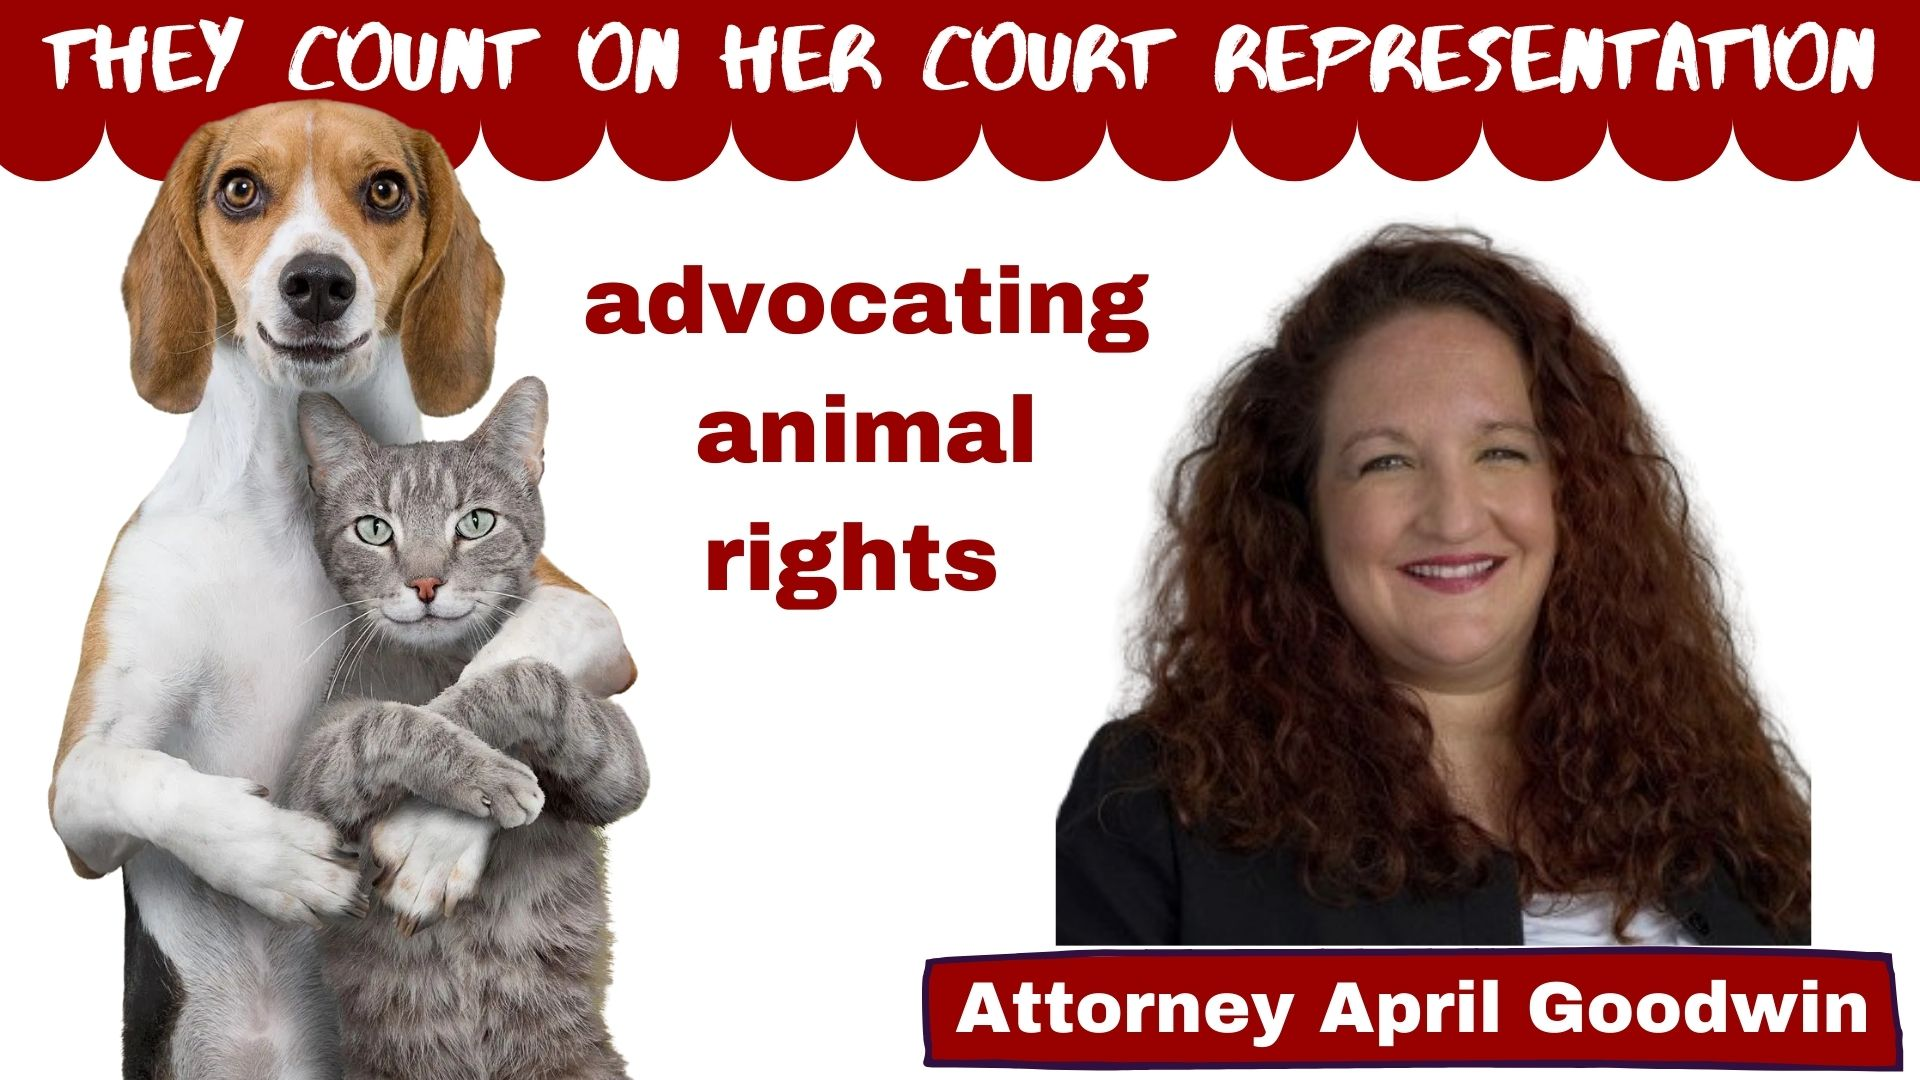 Pet count on April Goodwin court representation